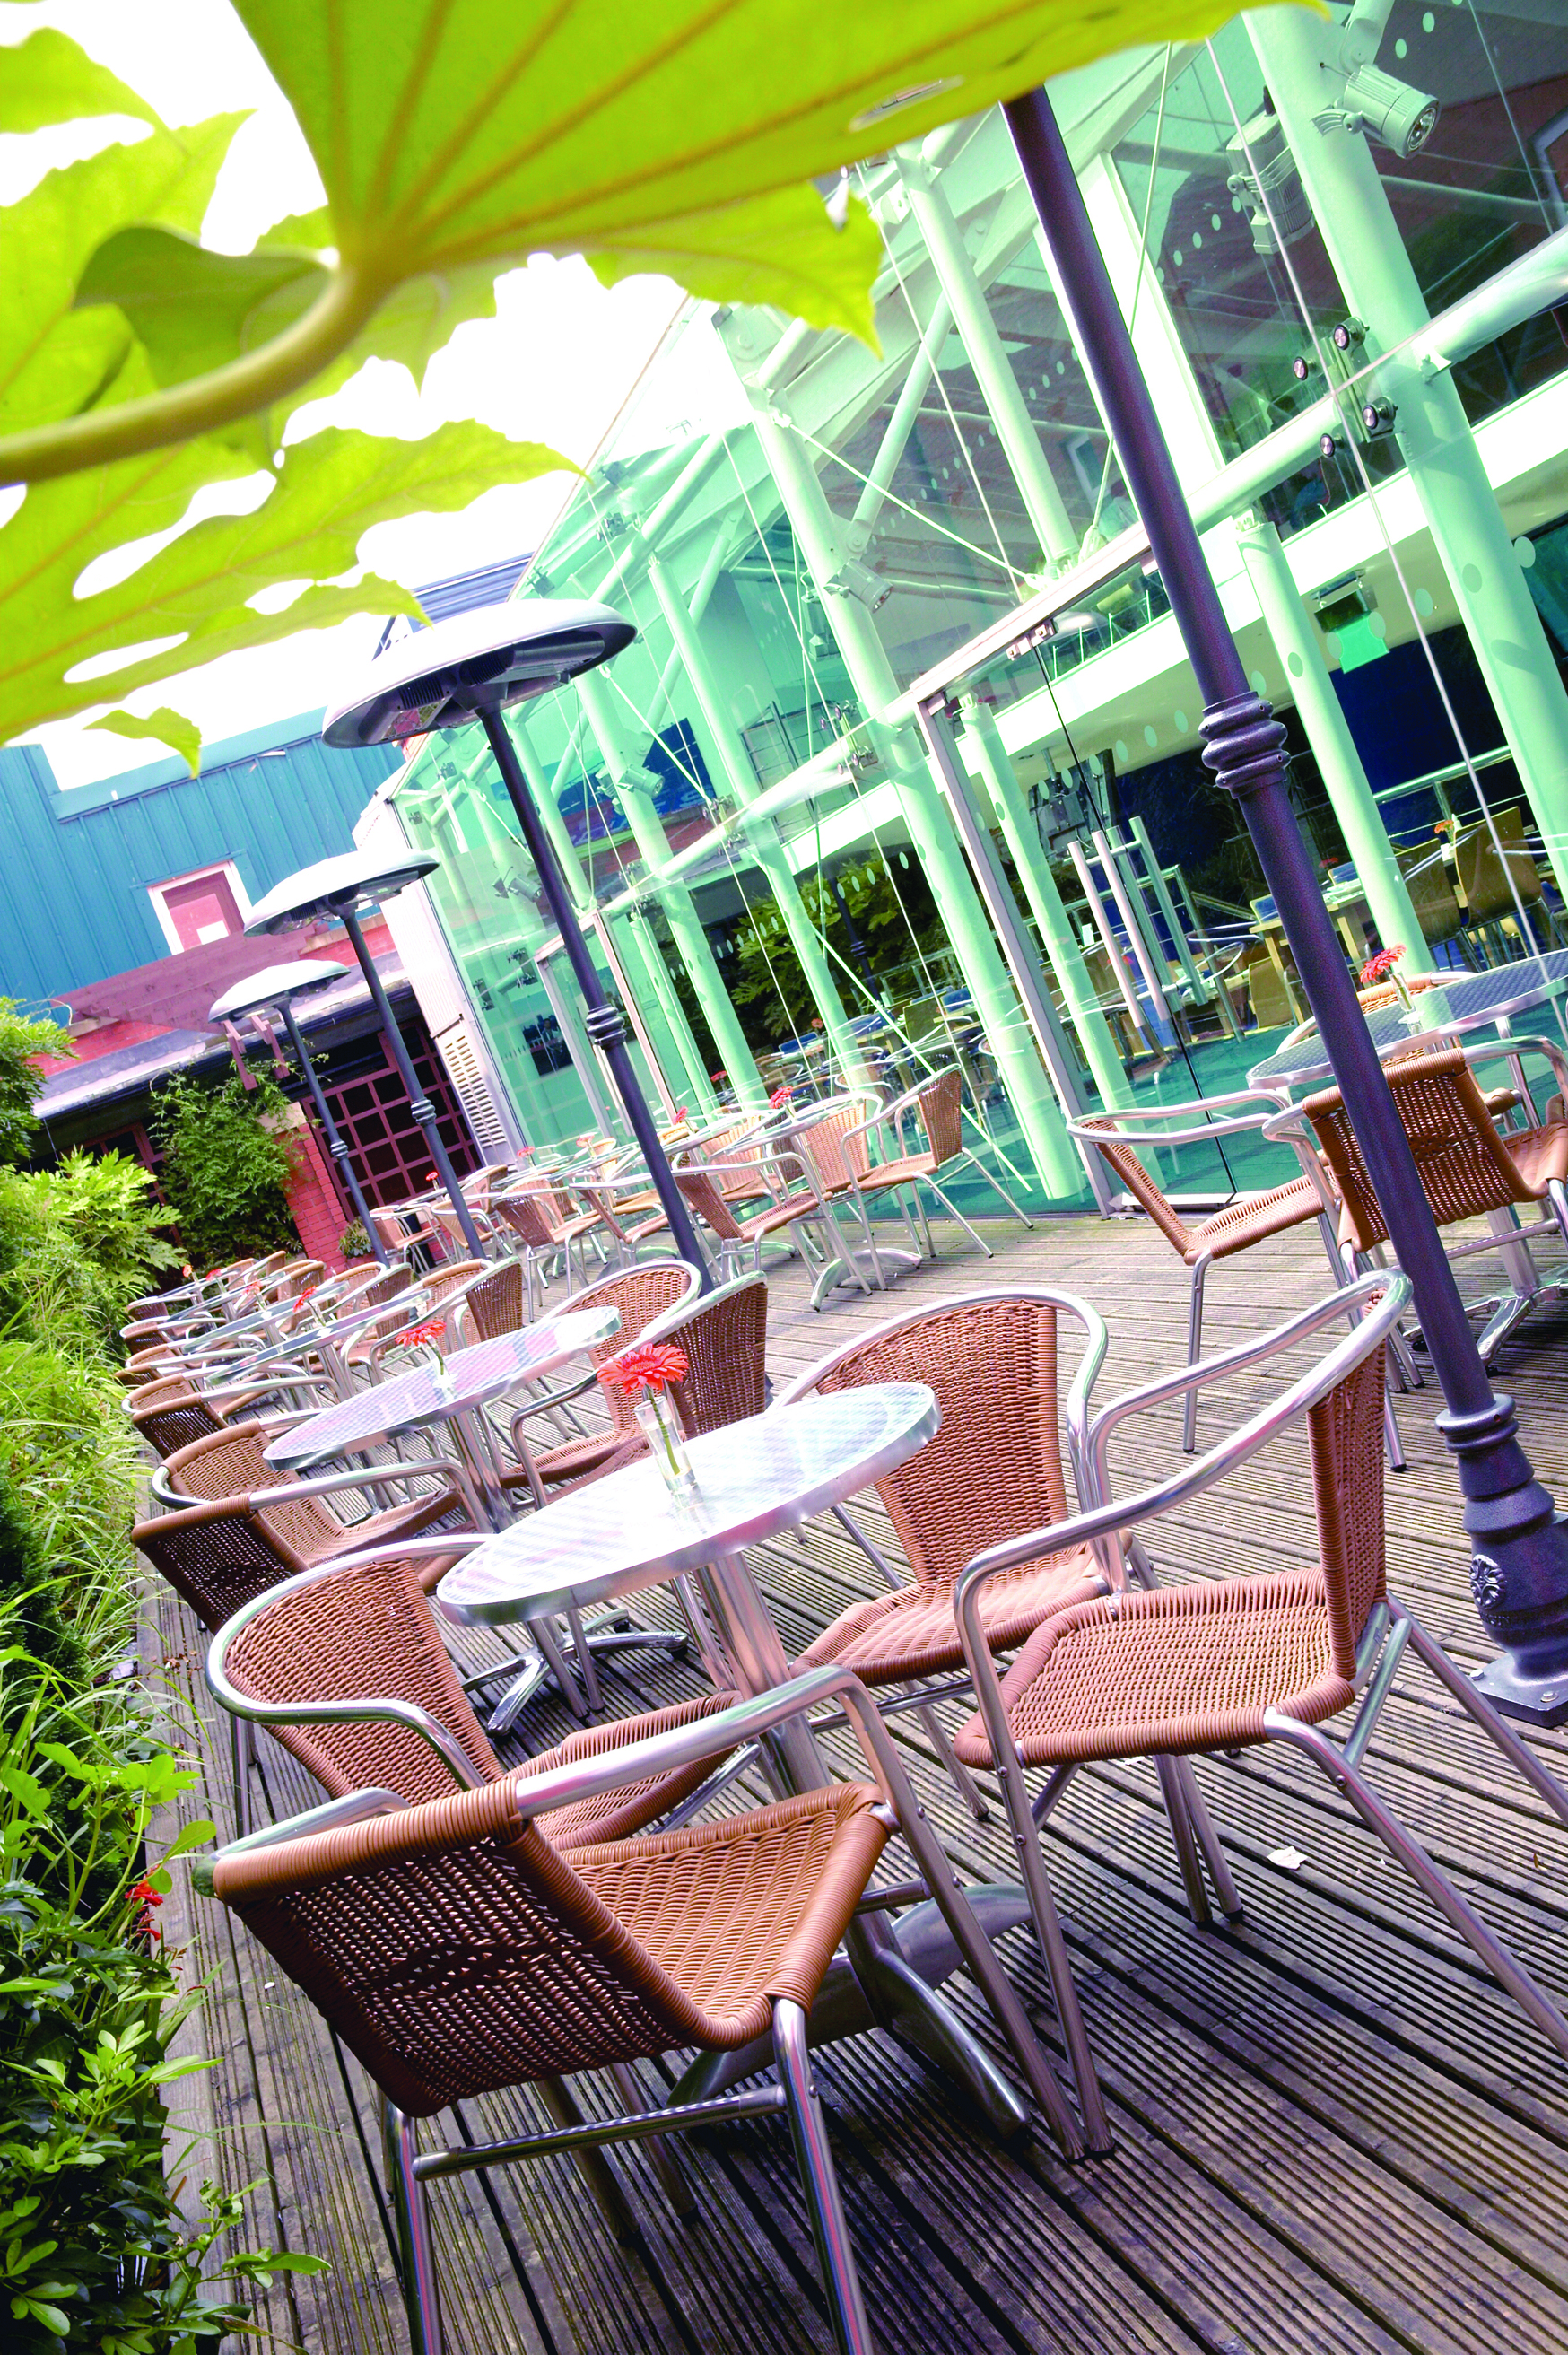 thestudio-Birmingham-conference-meetings-and-events-venue-roof-garden.jpg